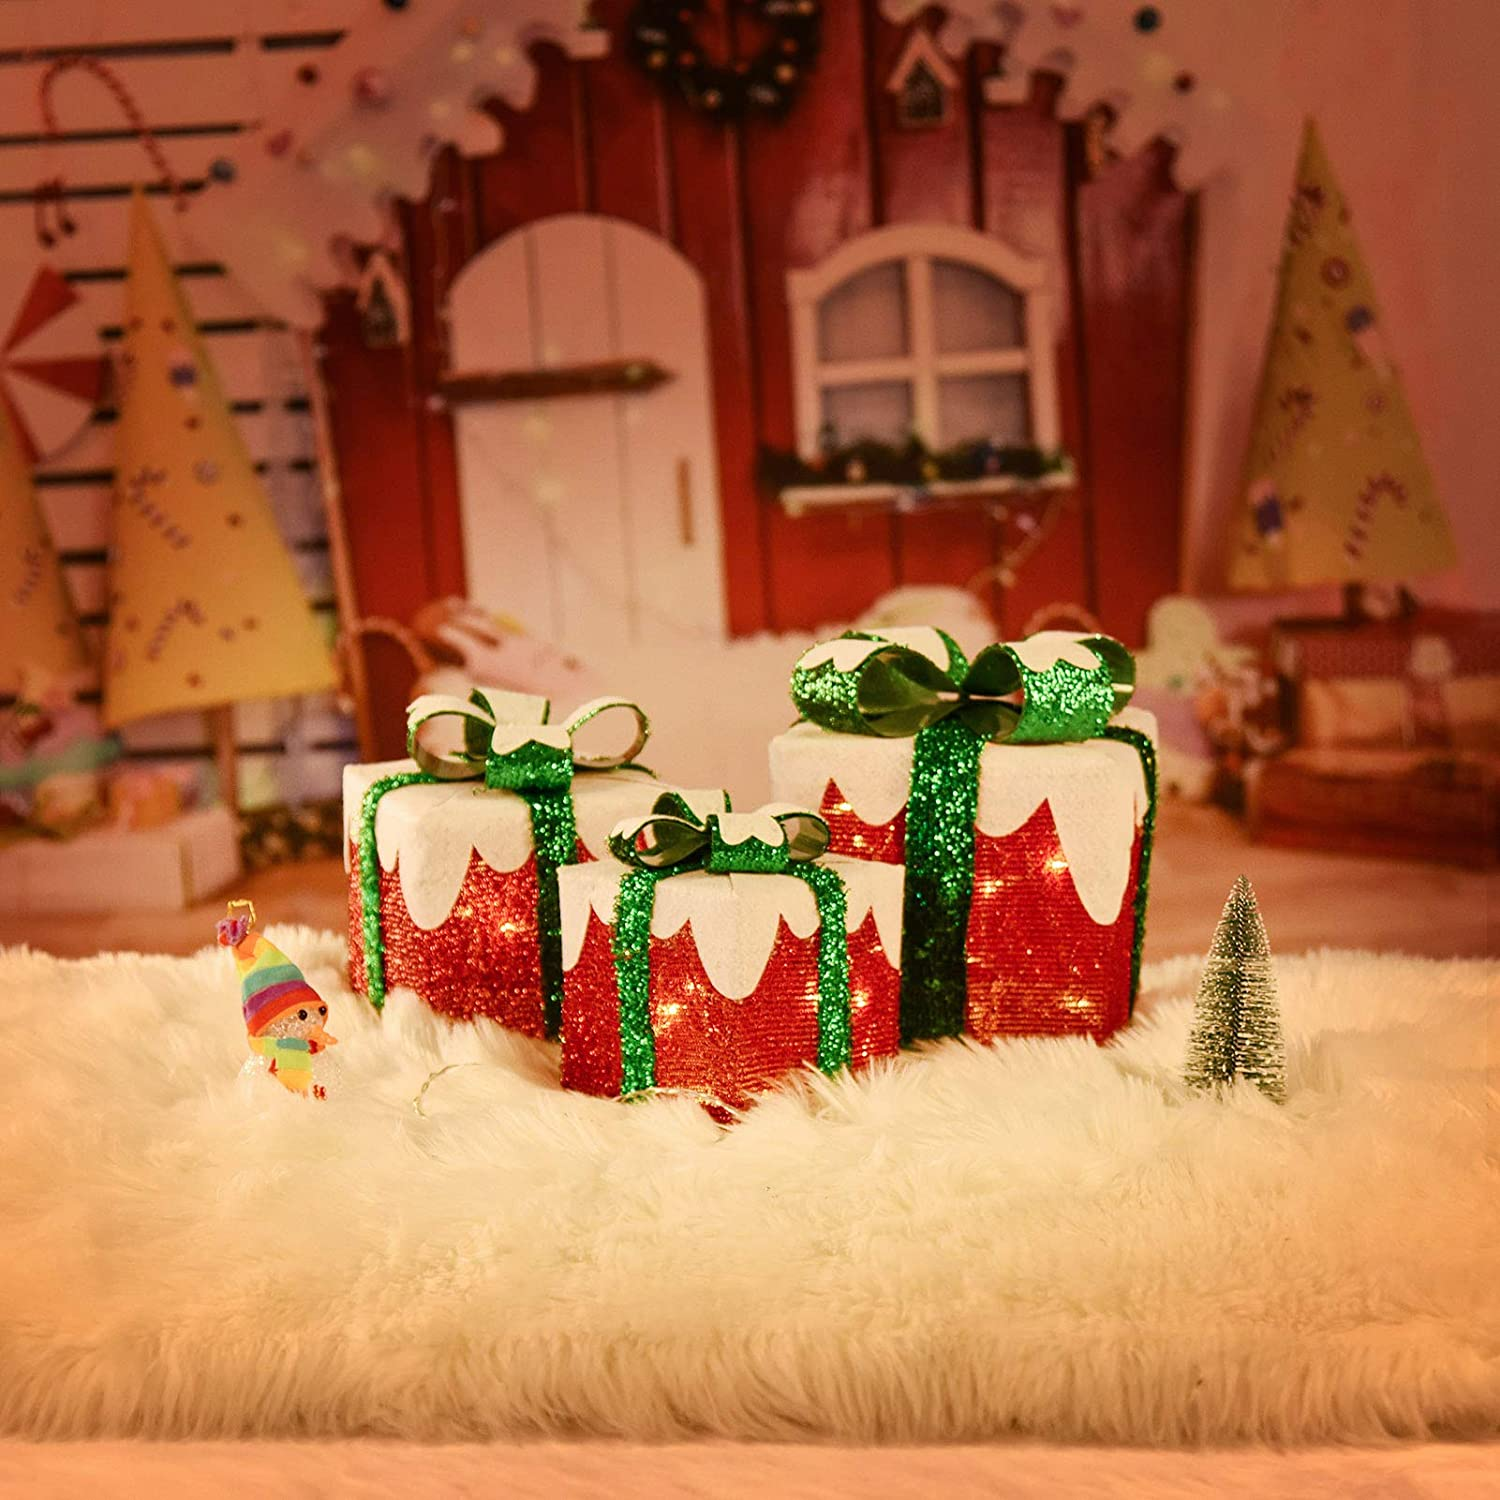 Set of 3 Christmas Lighted Gift Boxes, 60 LED Pre-lit Light Up Indoor Outdoor Pathway Present Box for Holiday Decor